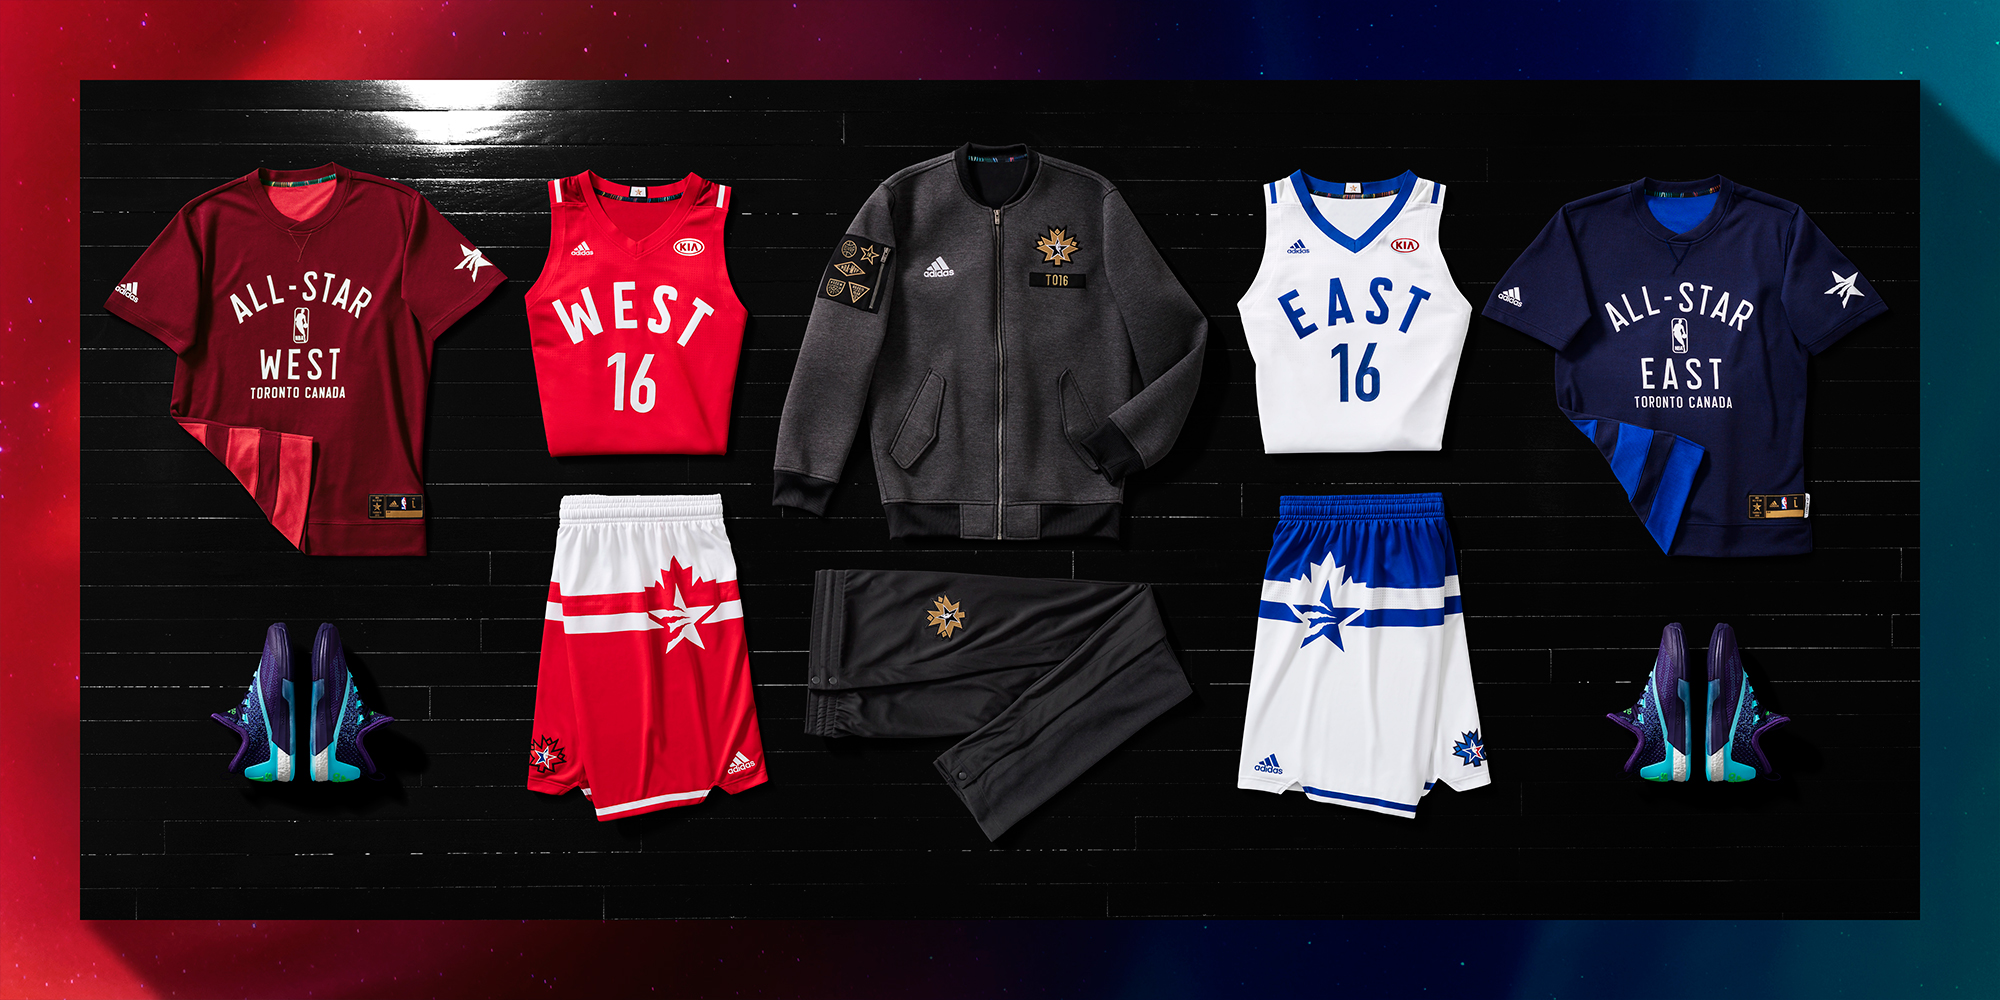 062651b3165 2016 NBA All-Star Game Jerseys Unveiled